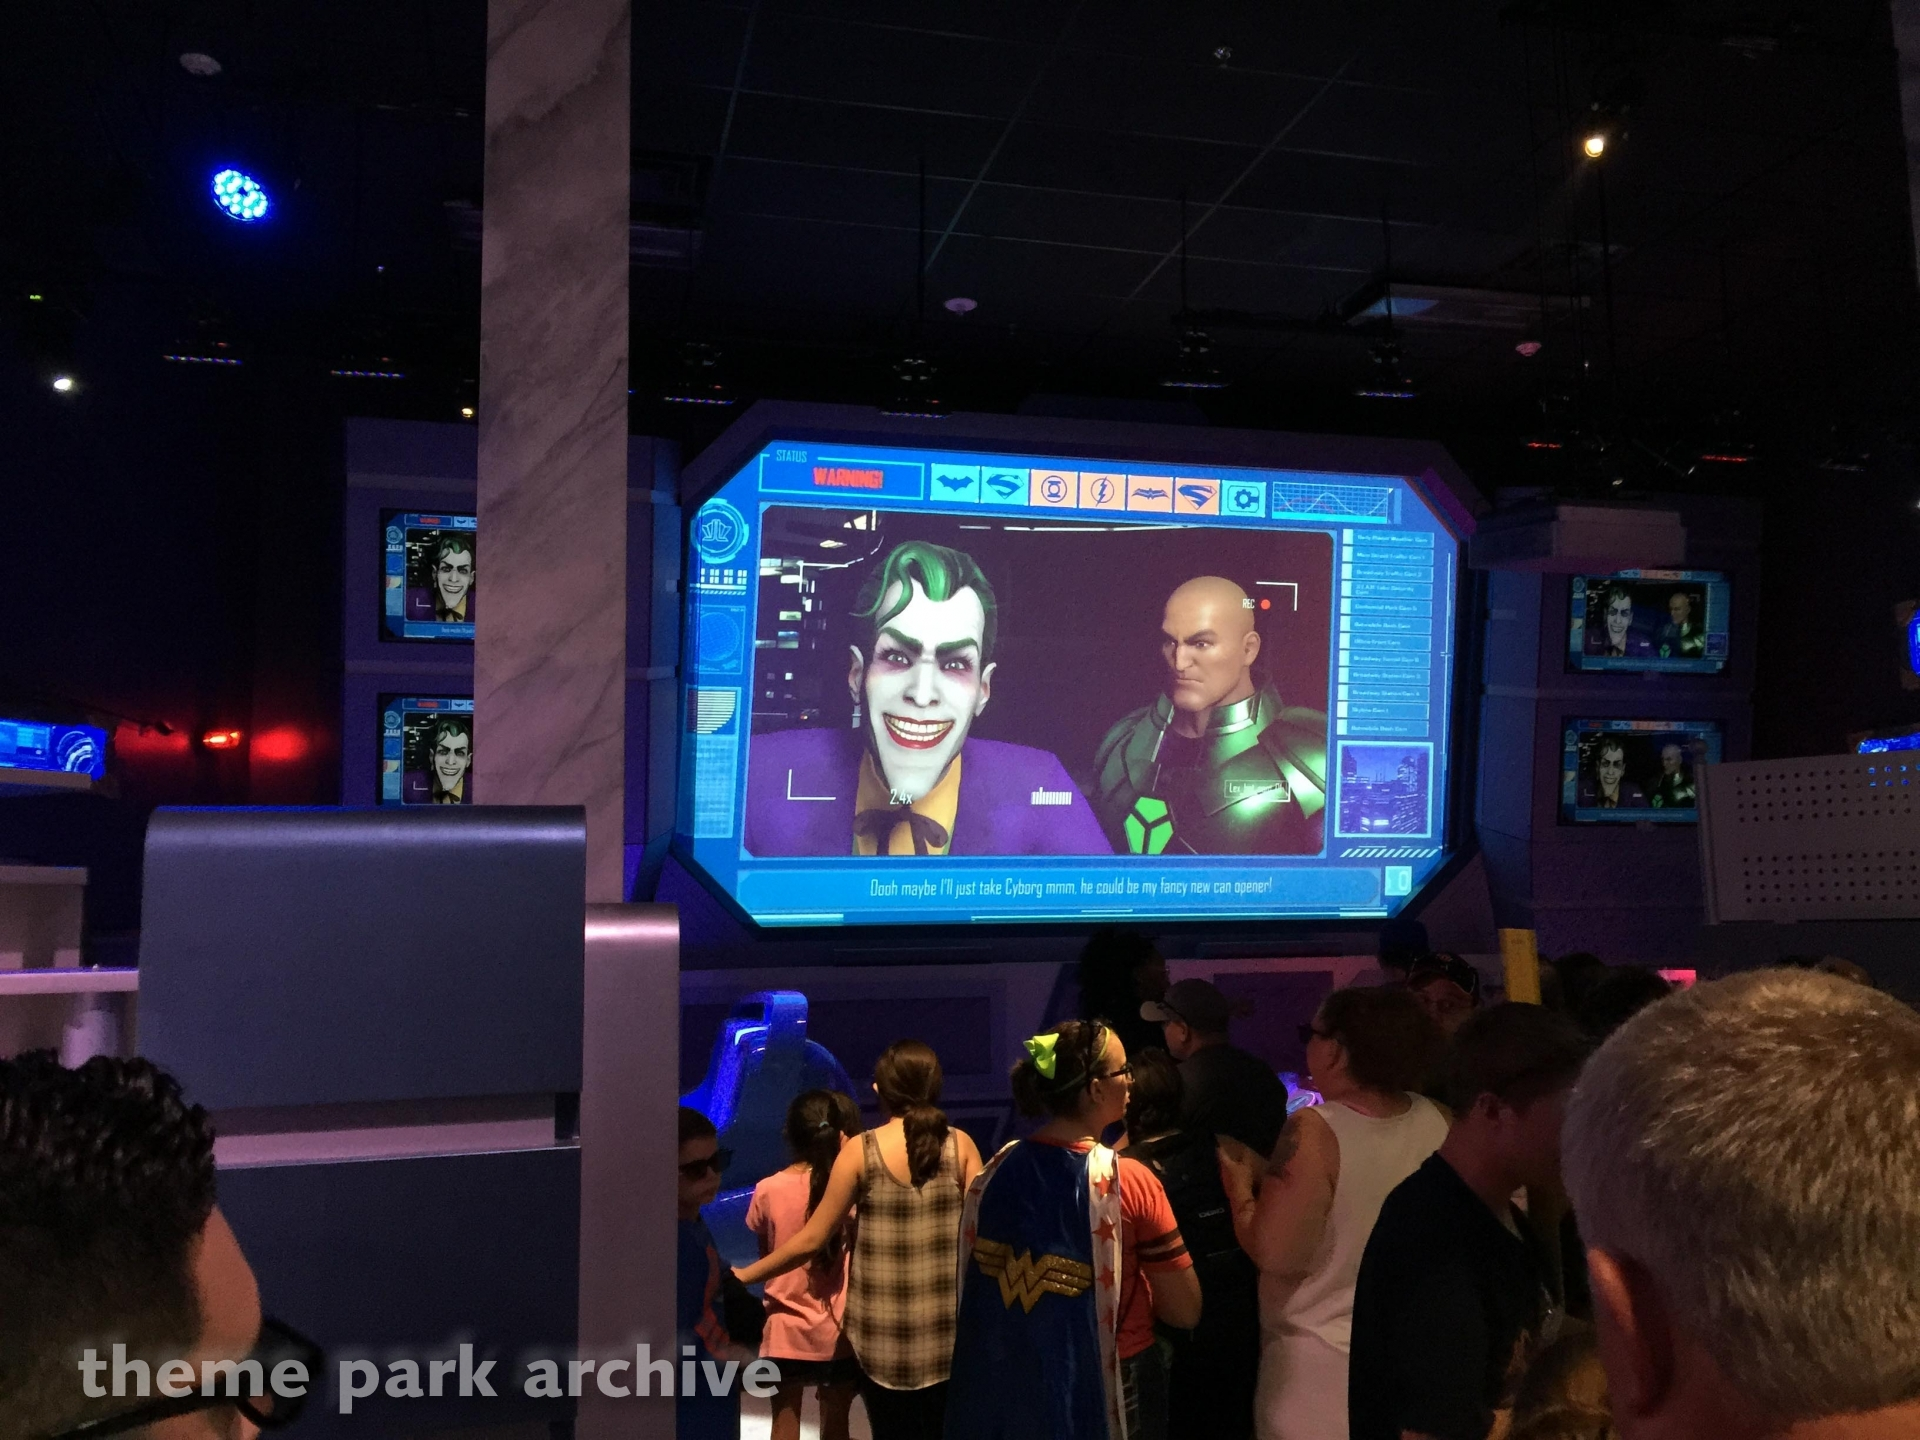 Justice League: Battle For Metropolis at Six Flags Over Texas